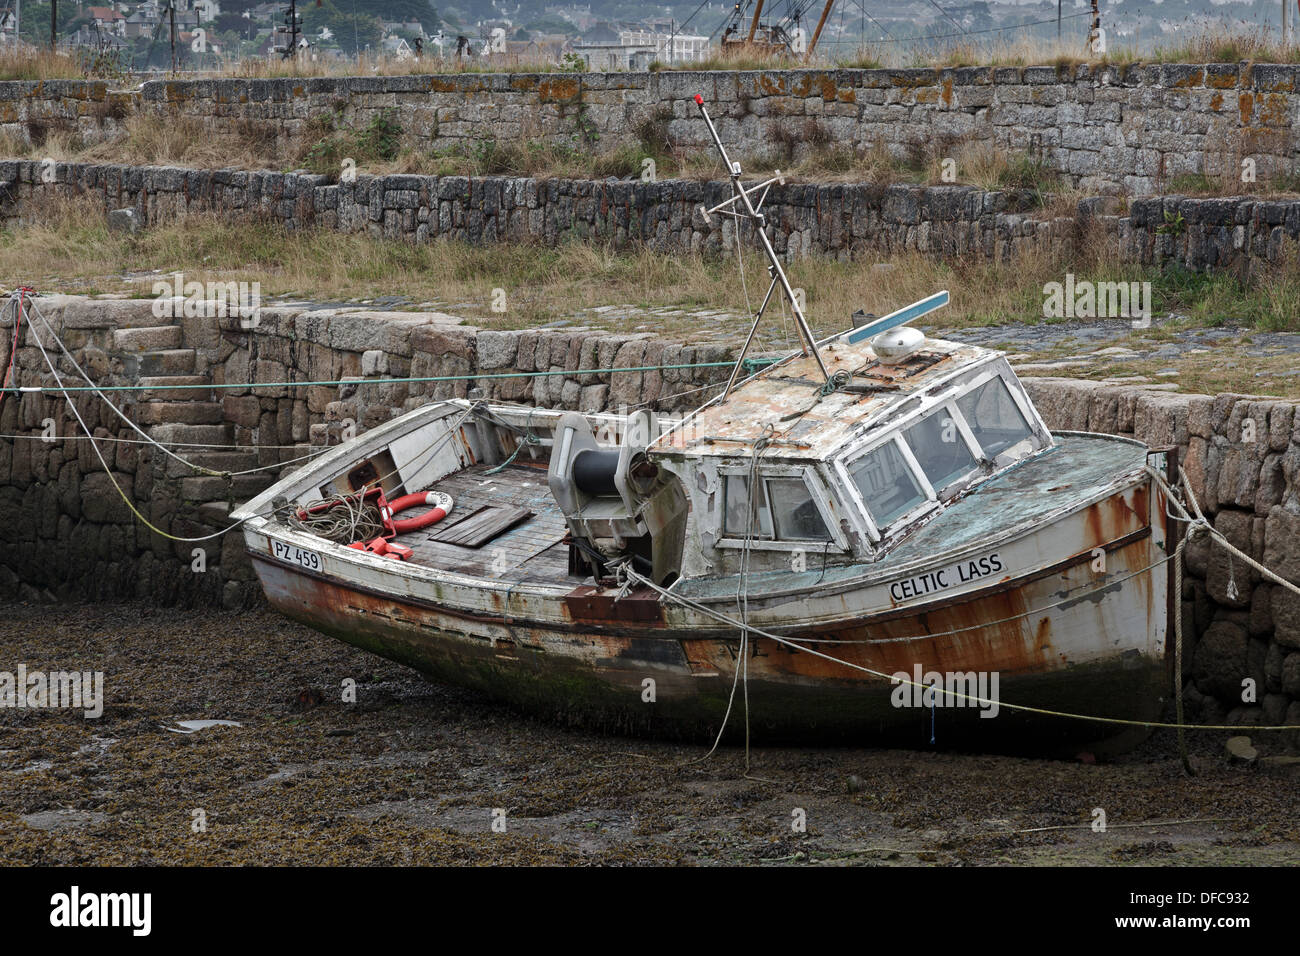 An old fishing boat the 'Celtic Lass', moored up in Newlyn harbour looking like she's seen better days. - Stock Image